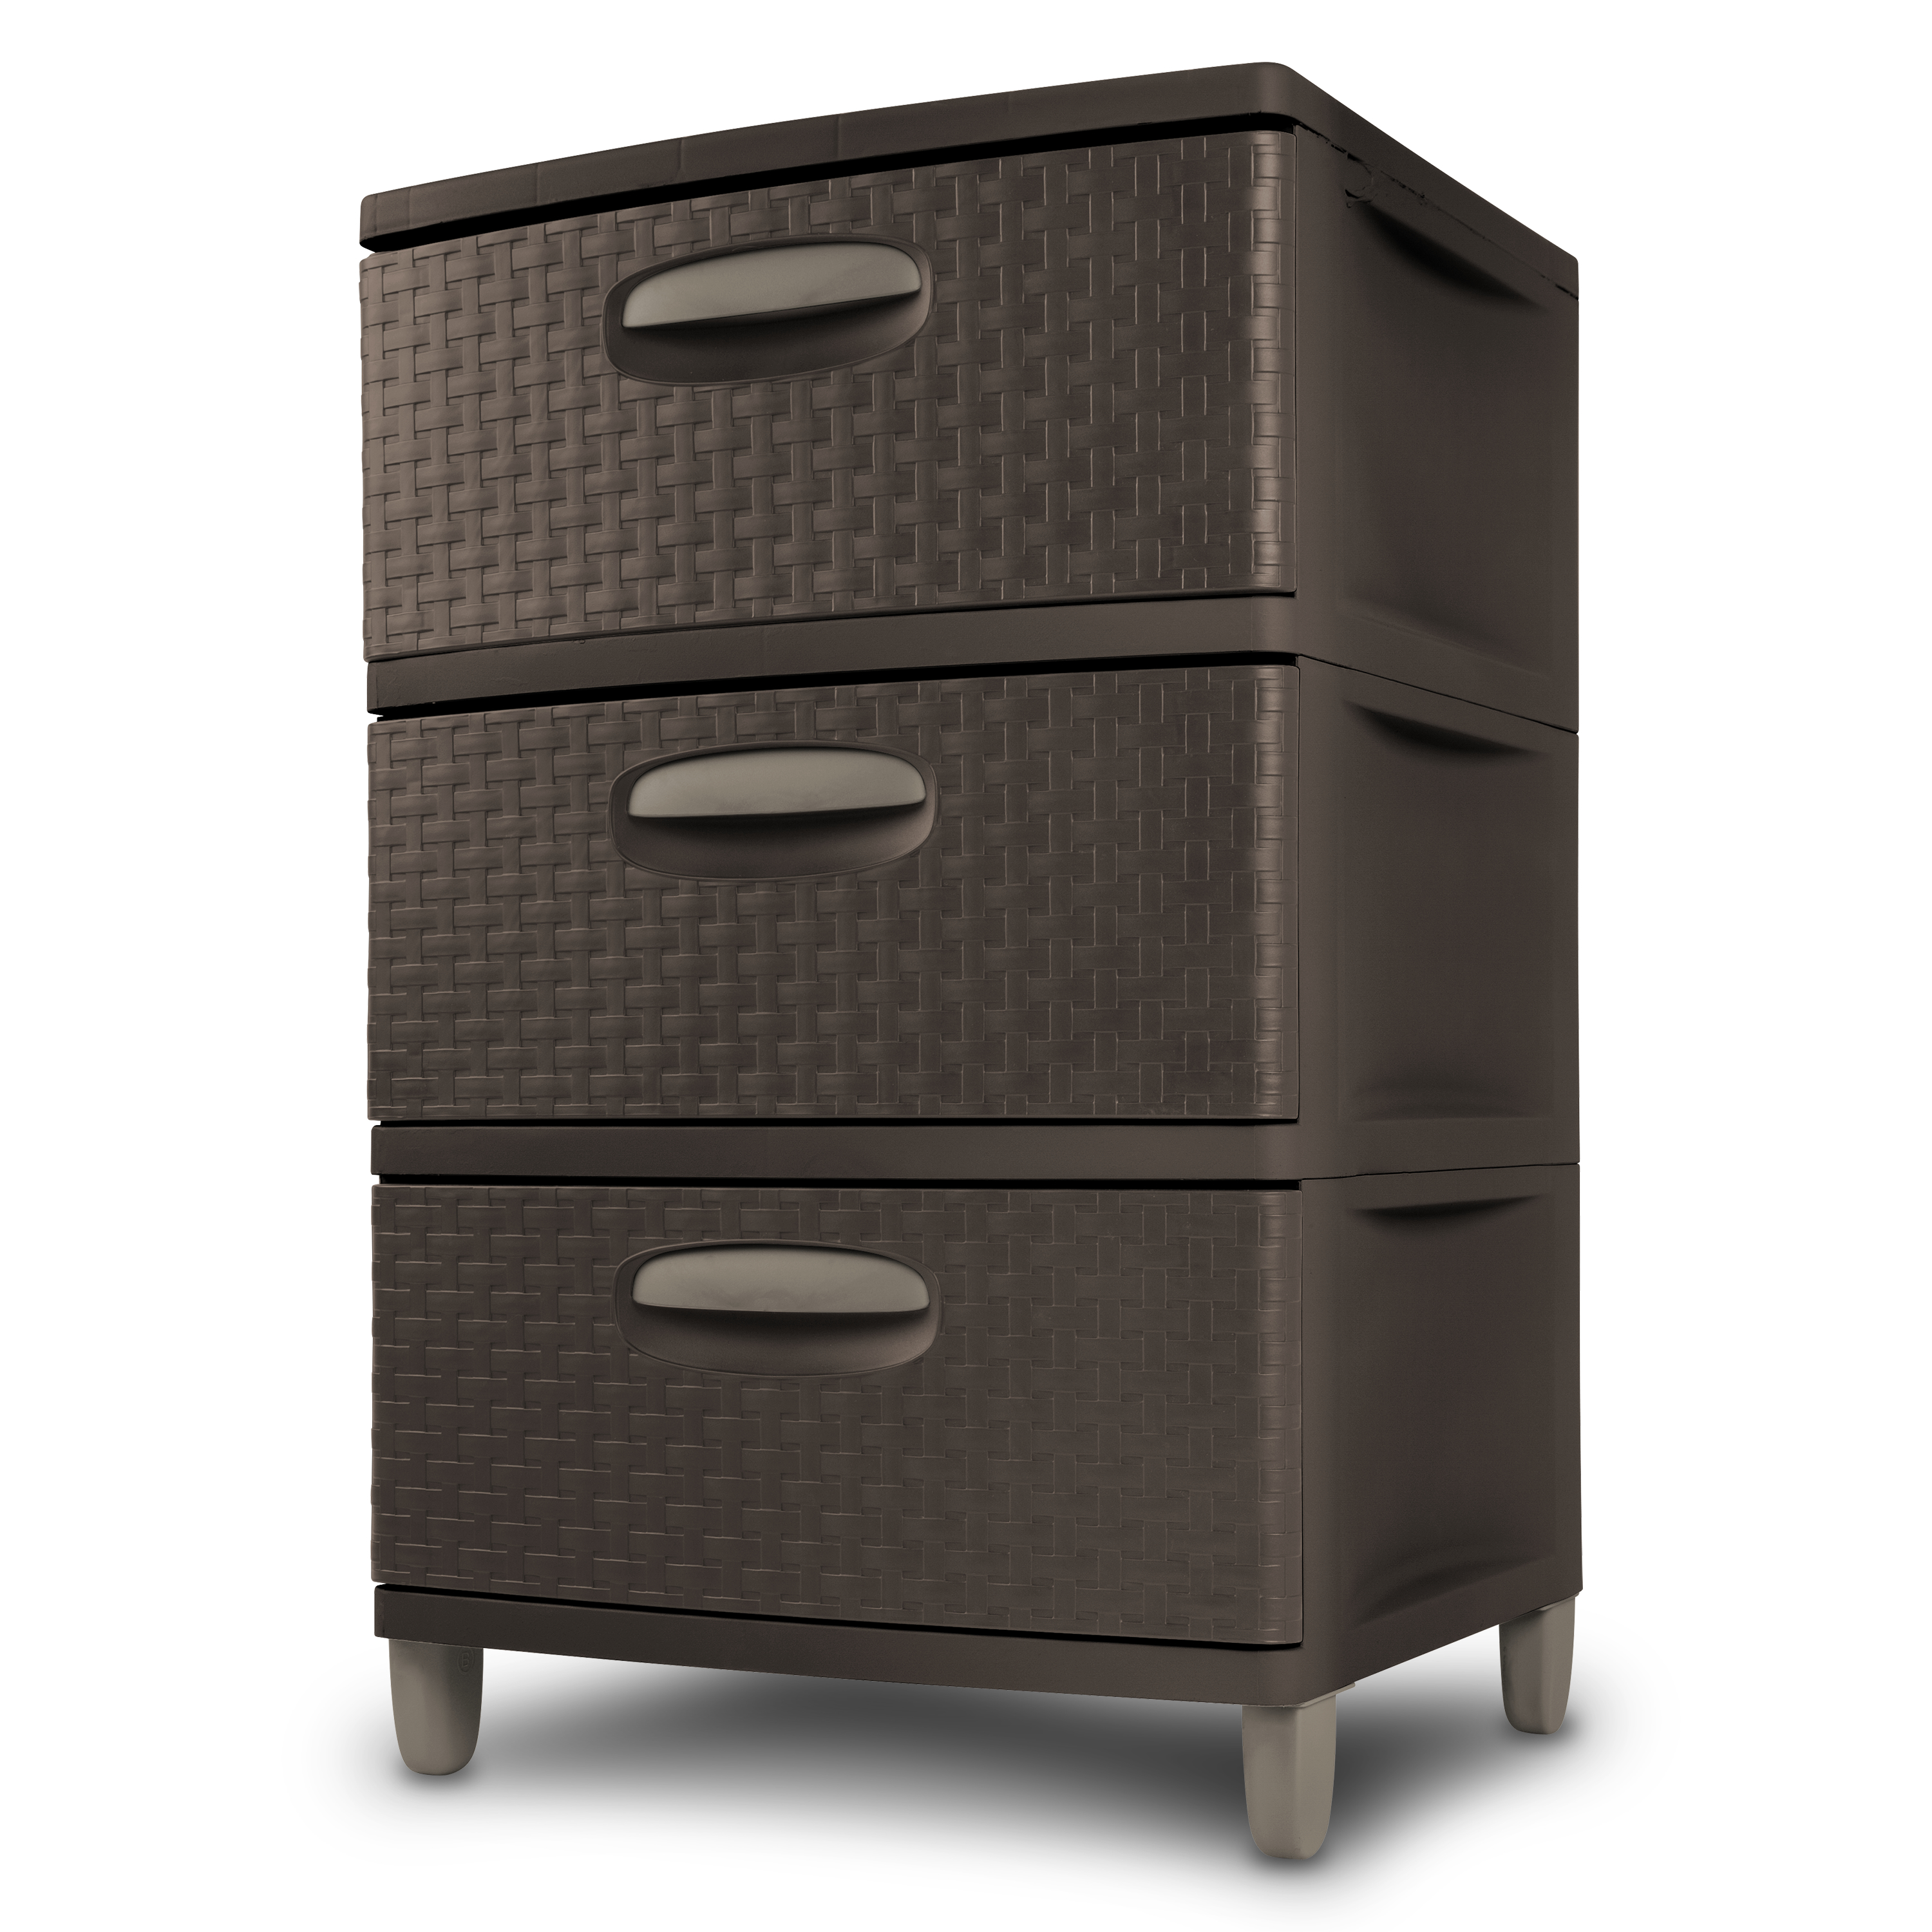 Sterilite 3 Weave Drawer Unit, Espresso